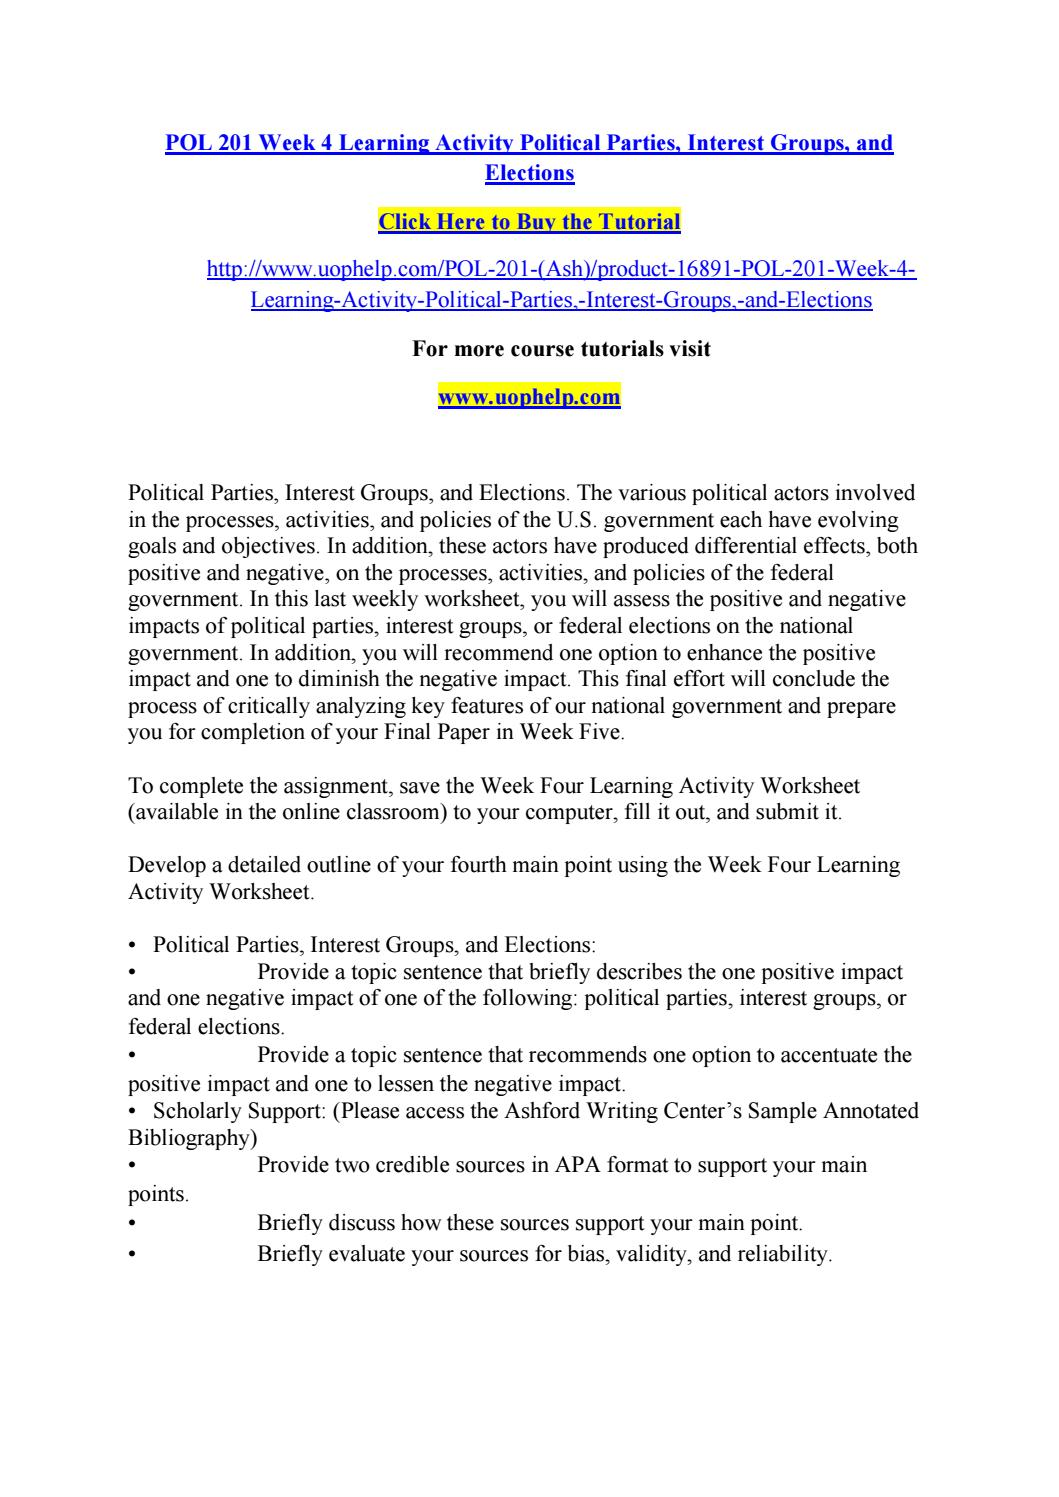 worksheet Political Parties Worksheet pol 201 week 4 learning activity political parties interest groups and elections by olymopicgam esrioaugus t 20 1 6 issuu